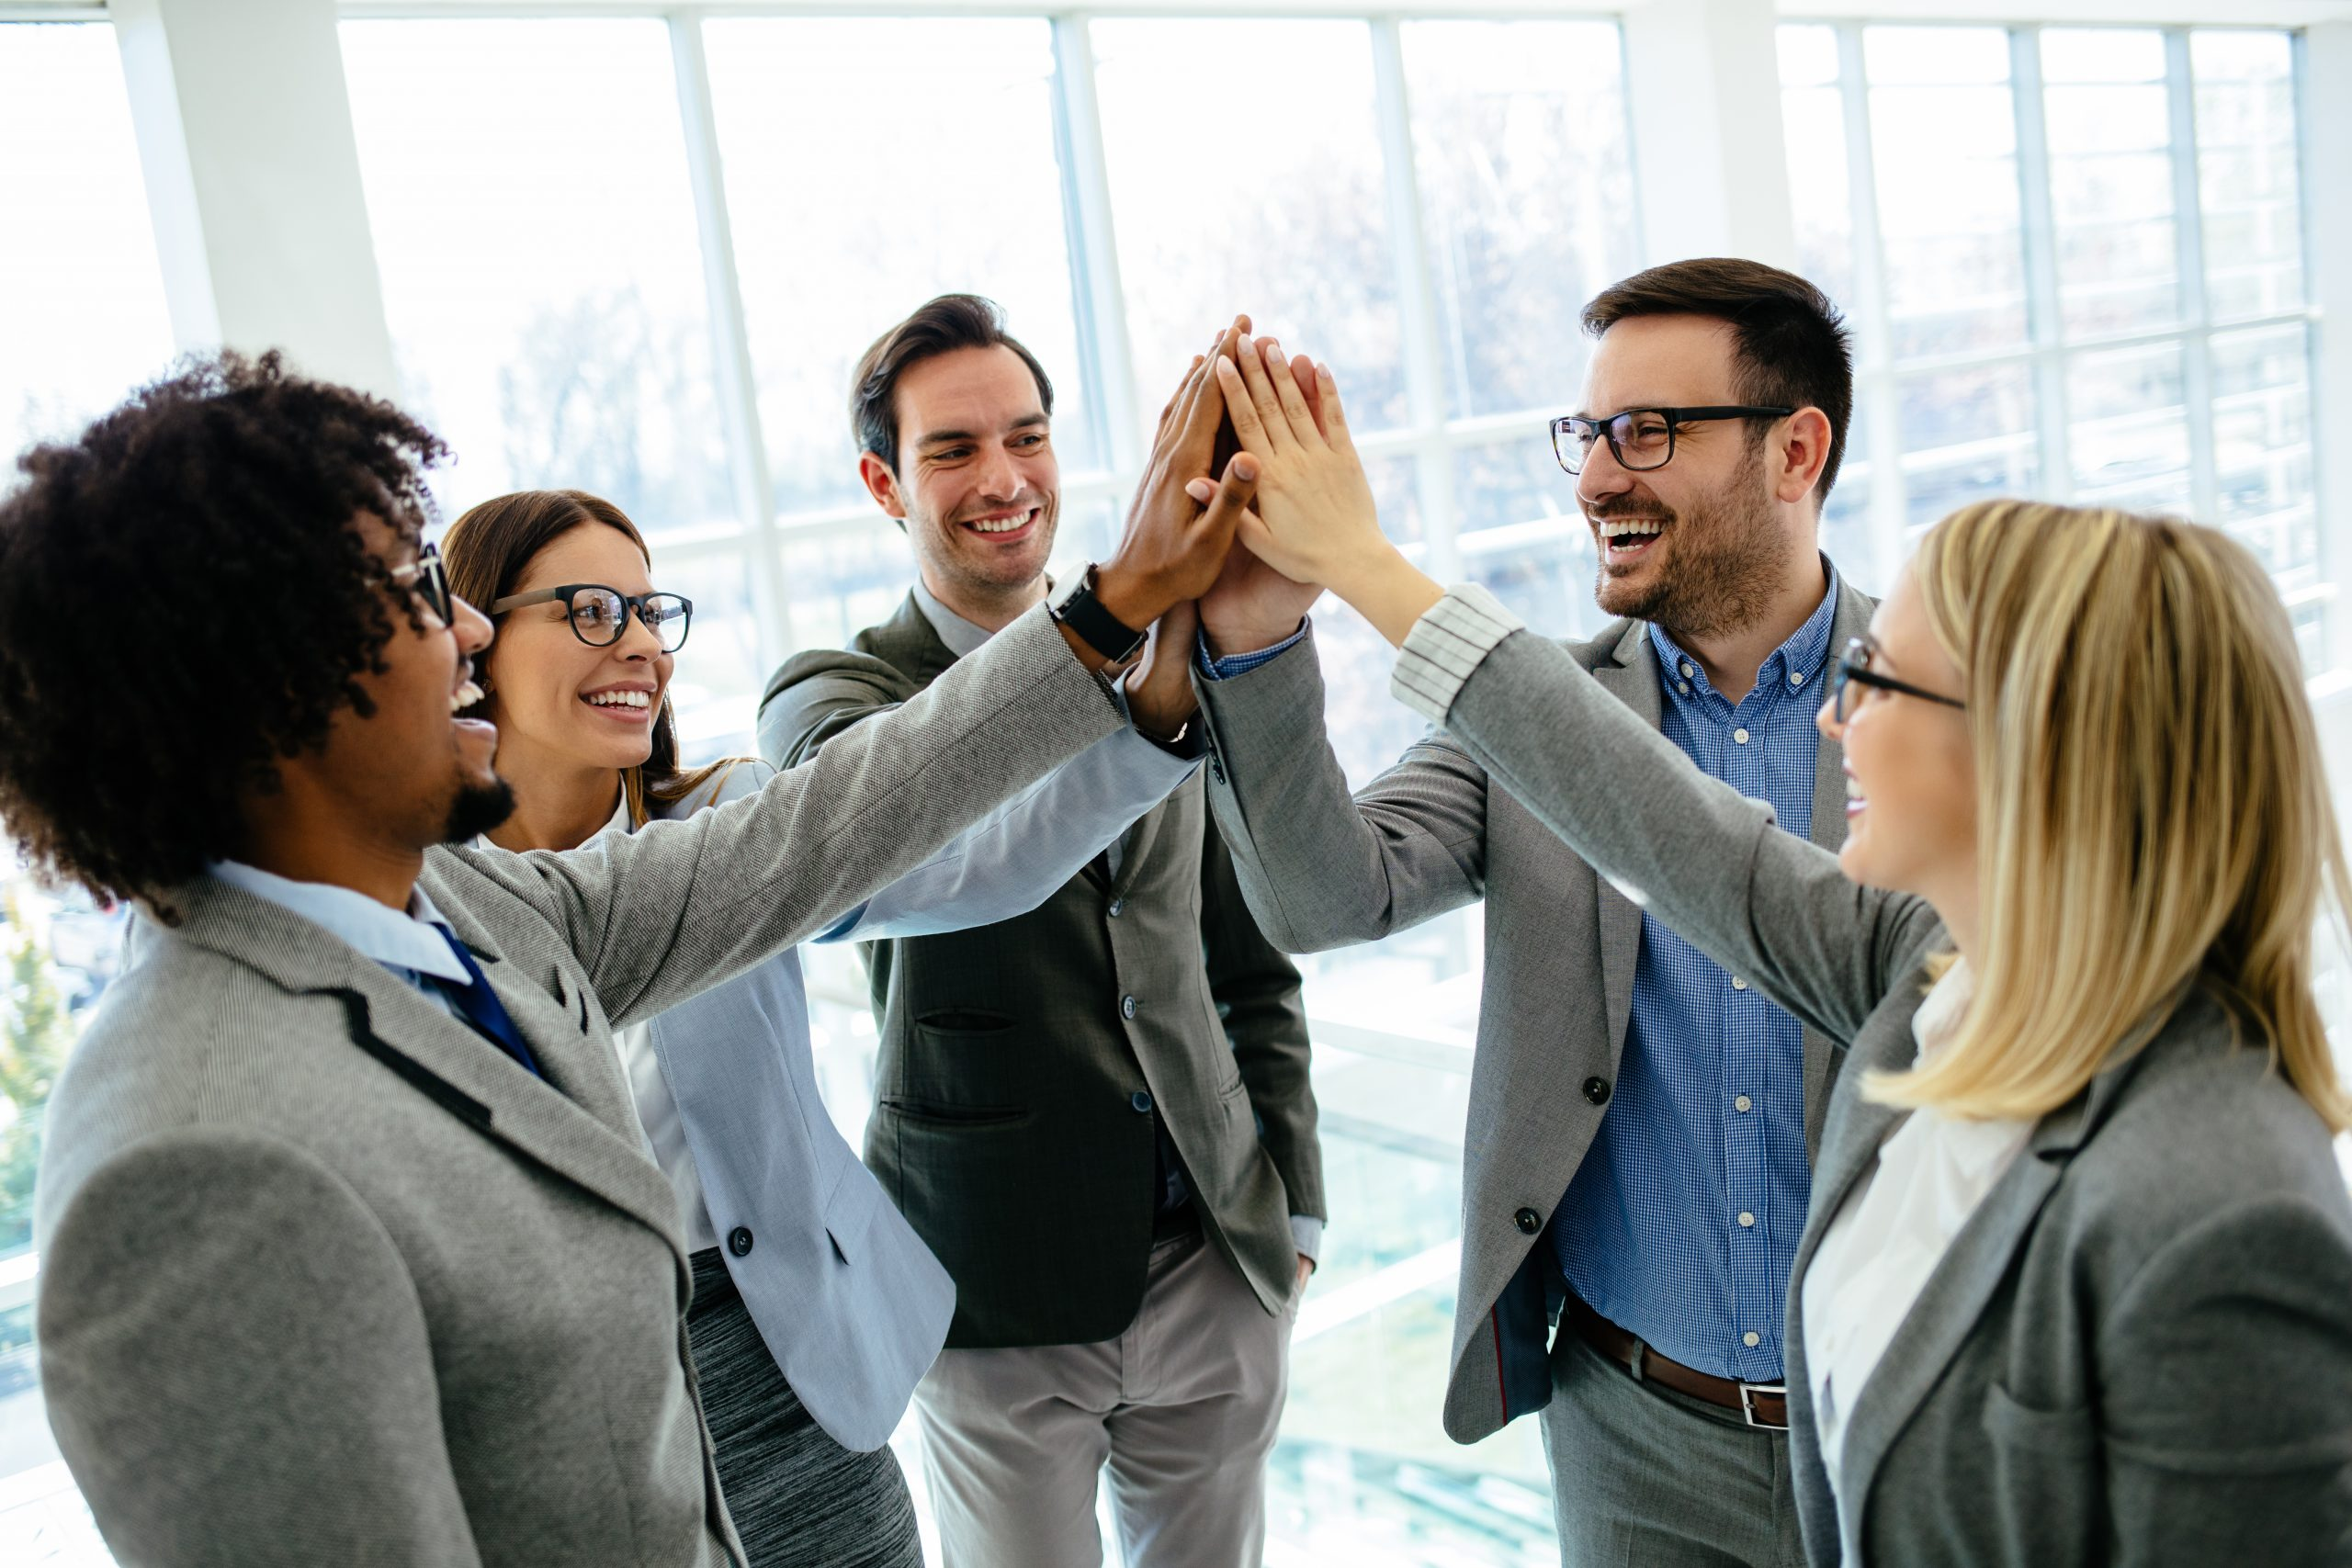 Excited business team give high five celebrate corporate success